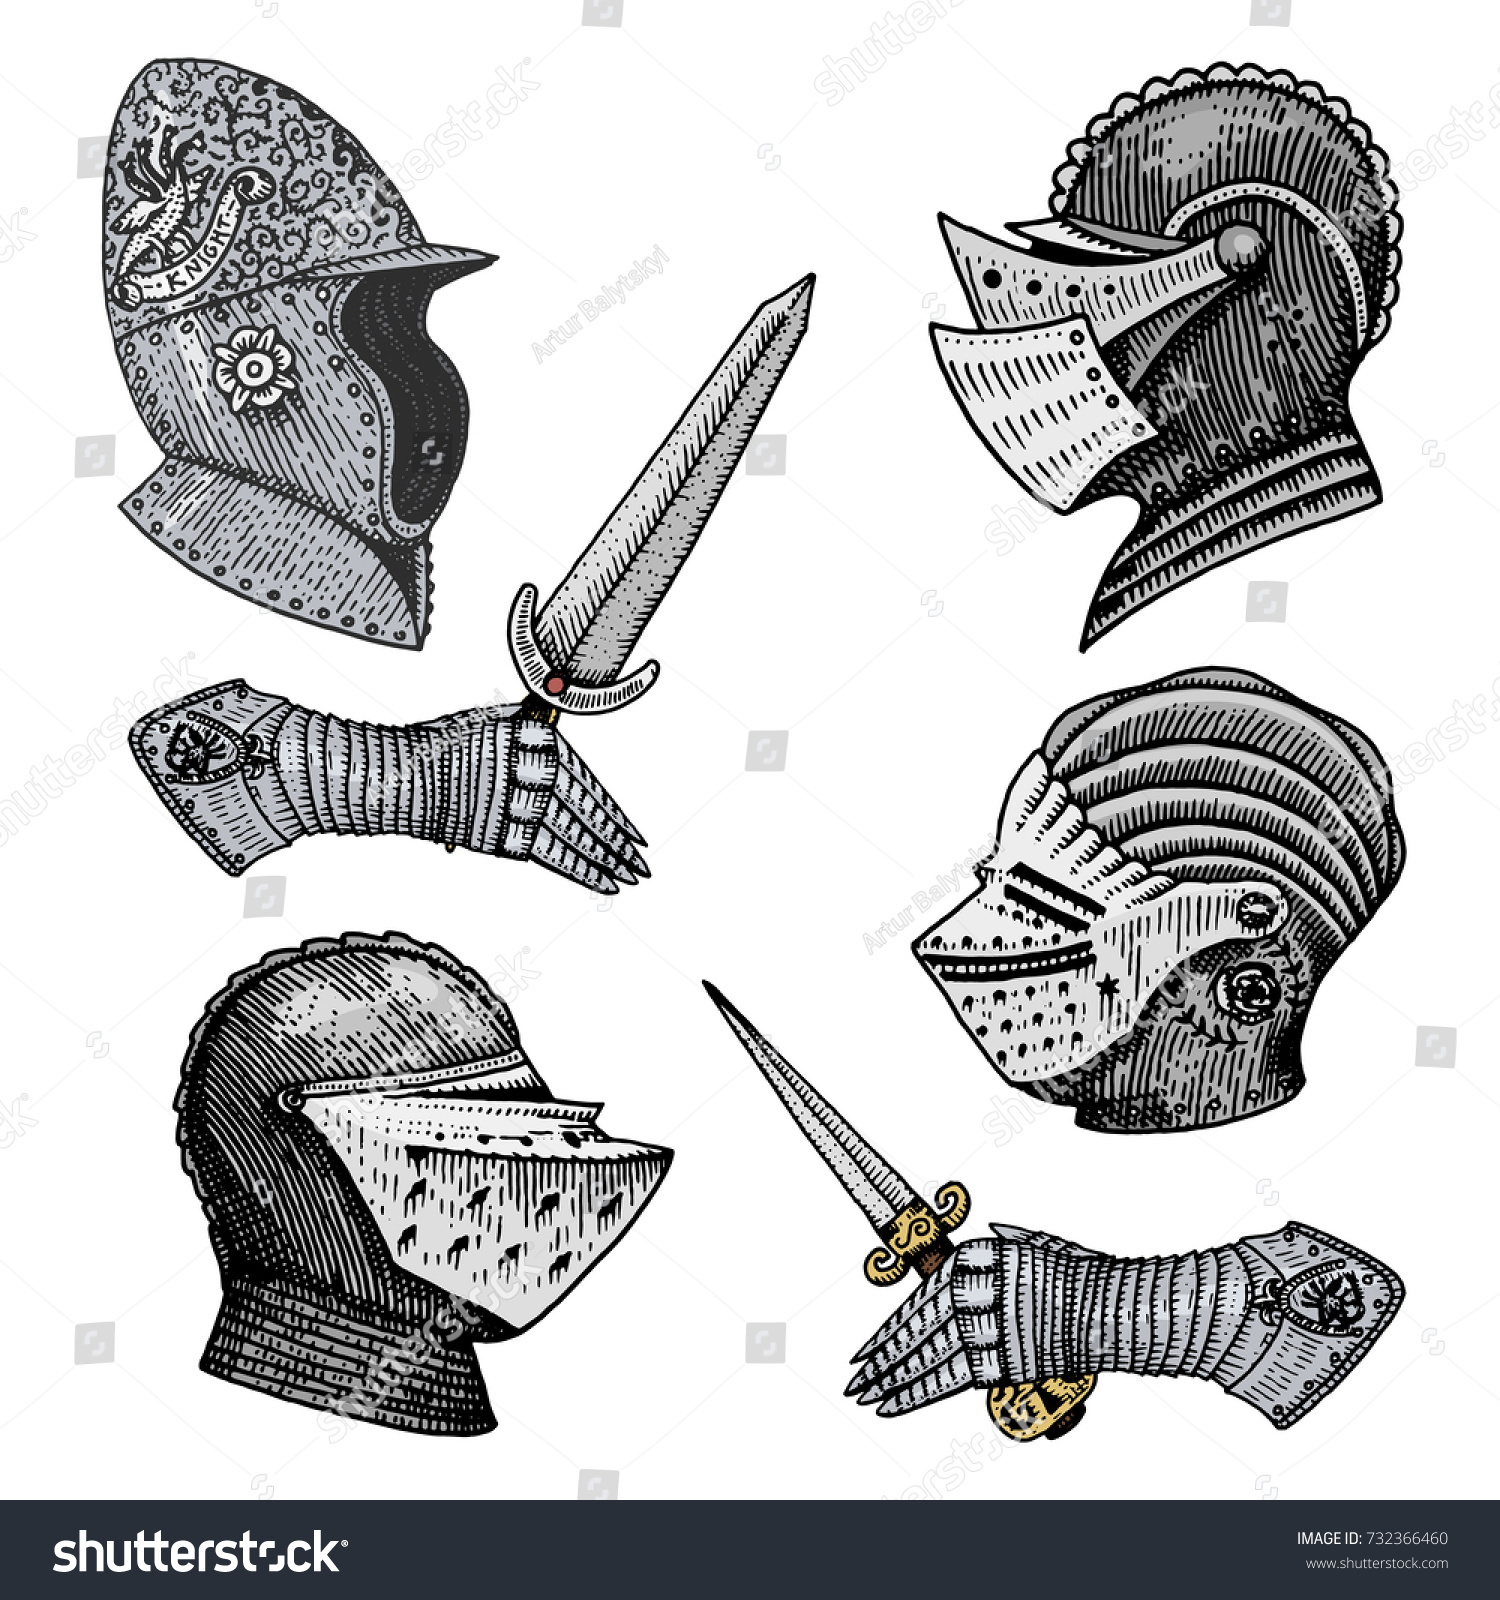 Set medieval symbols battle helmets knights stock vector 732366460 set of medieval symbols battle helmets for knights or kings vintage engraved hand drawn biocorpaavc Images